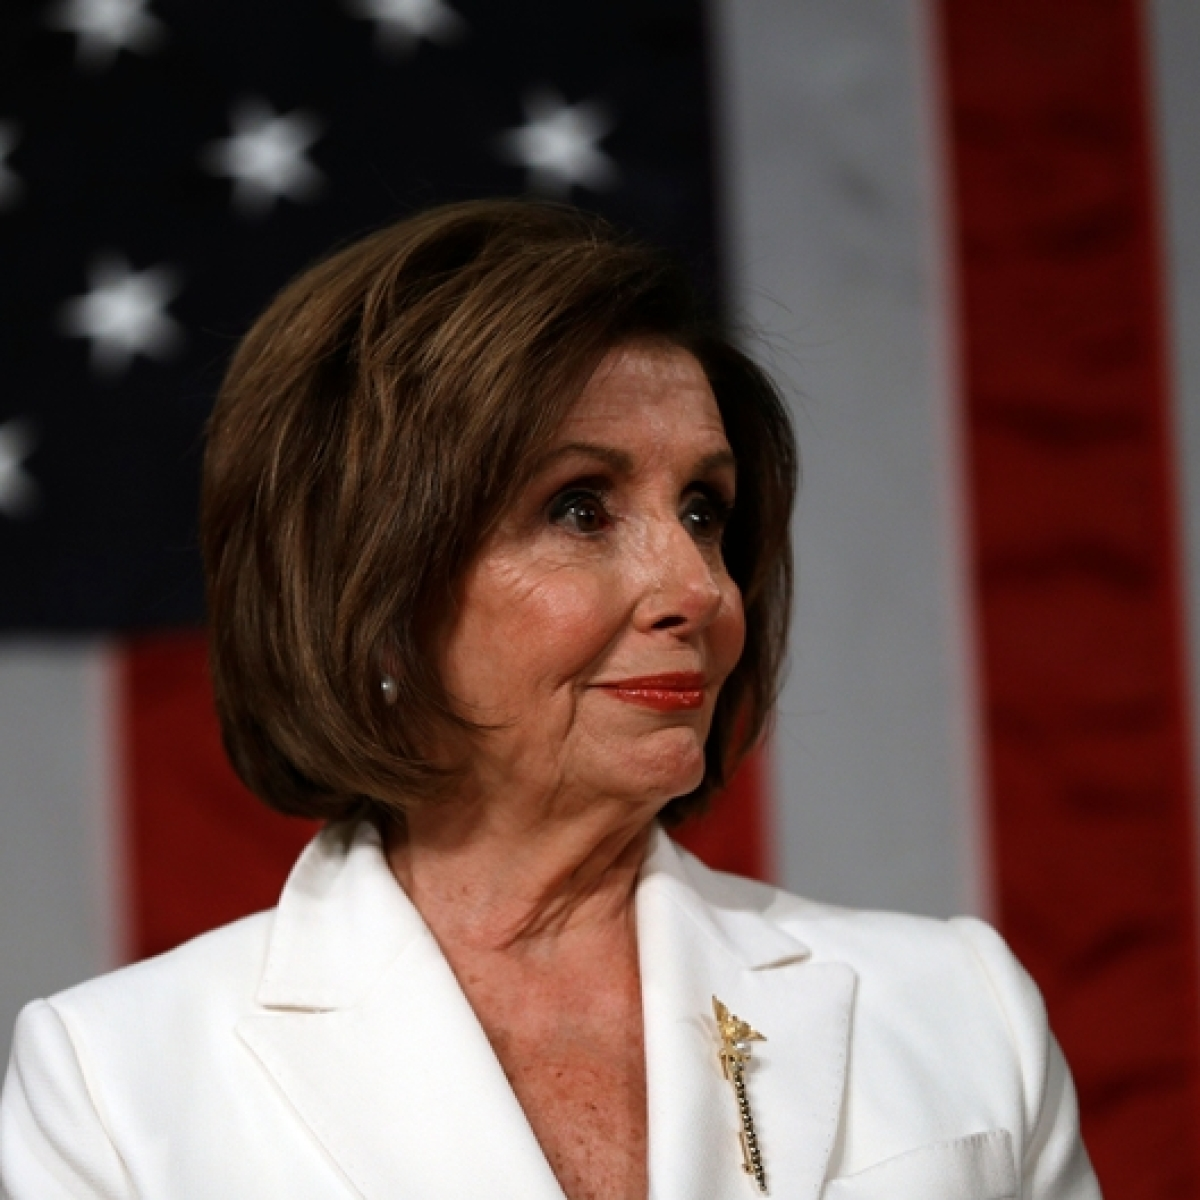 Who's clapping now? Nancy Pelosi tears up State of the Union speech